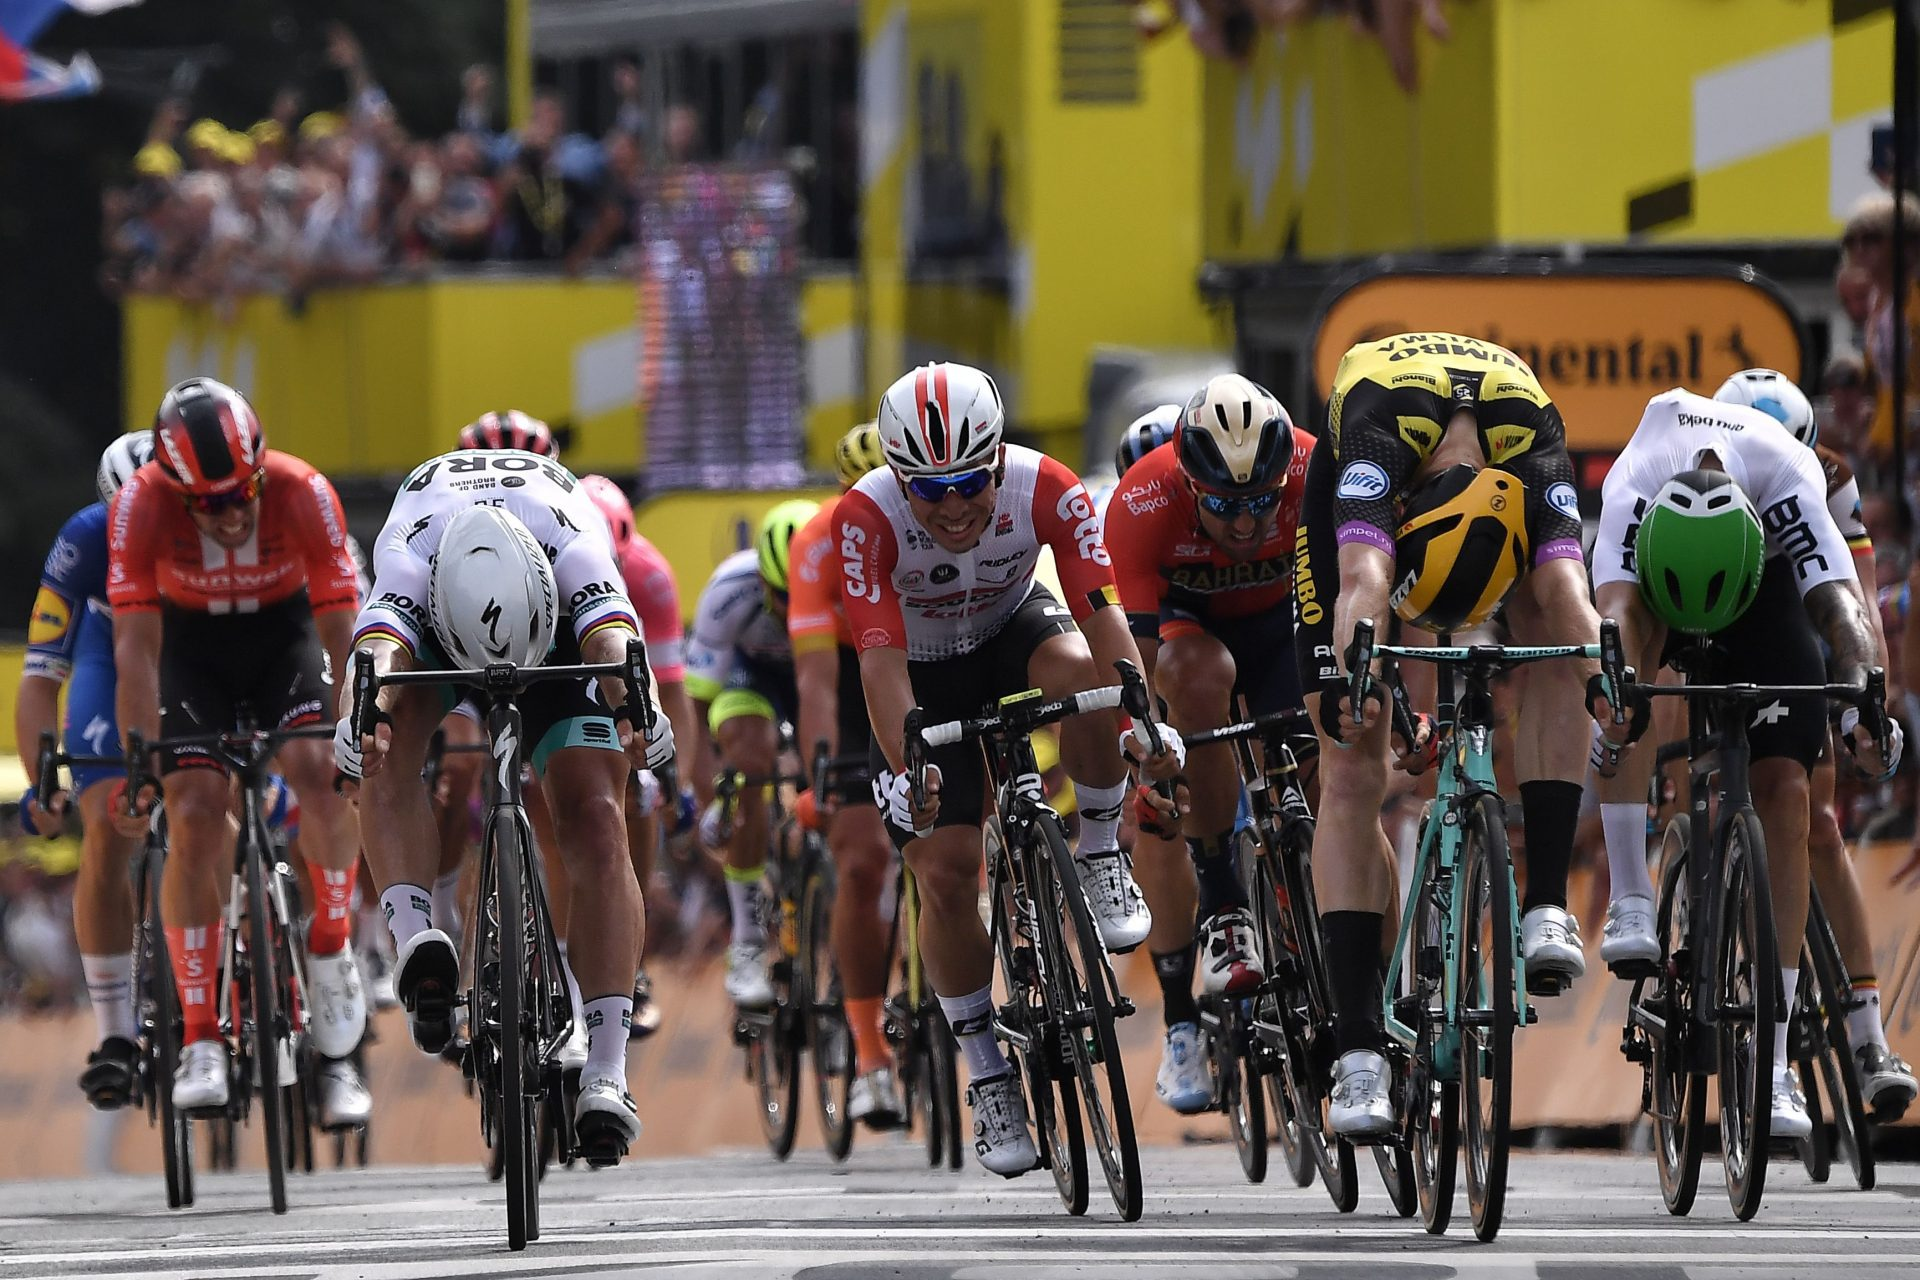 Elia Viviani Sprints to 2019 Tour de France Stage 4 Win 11